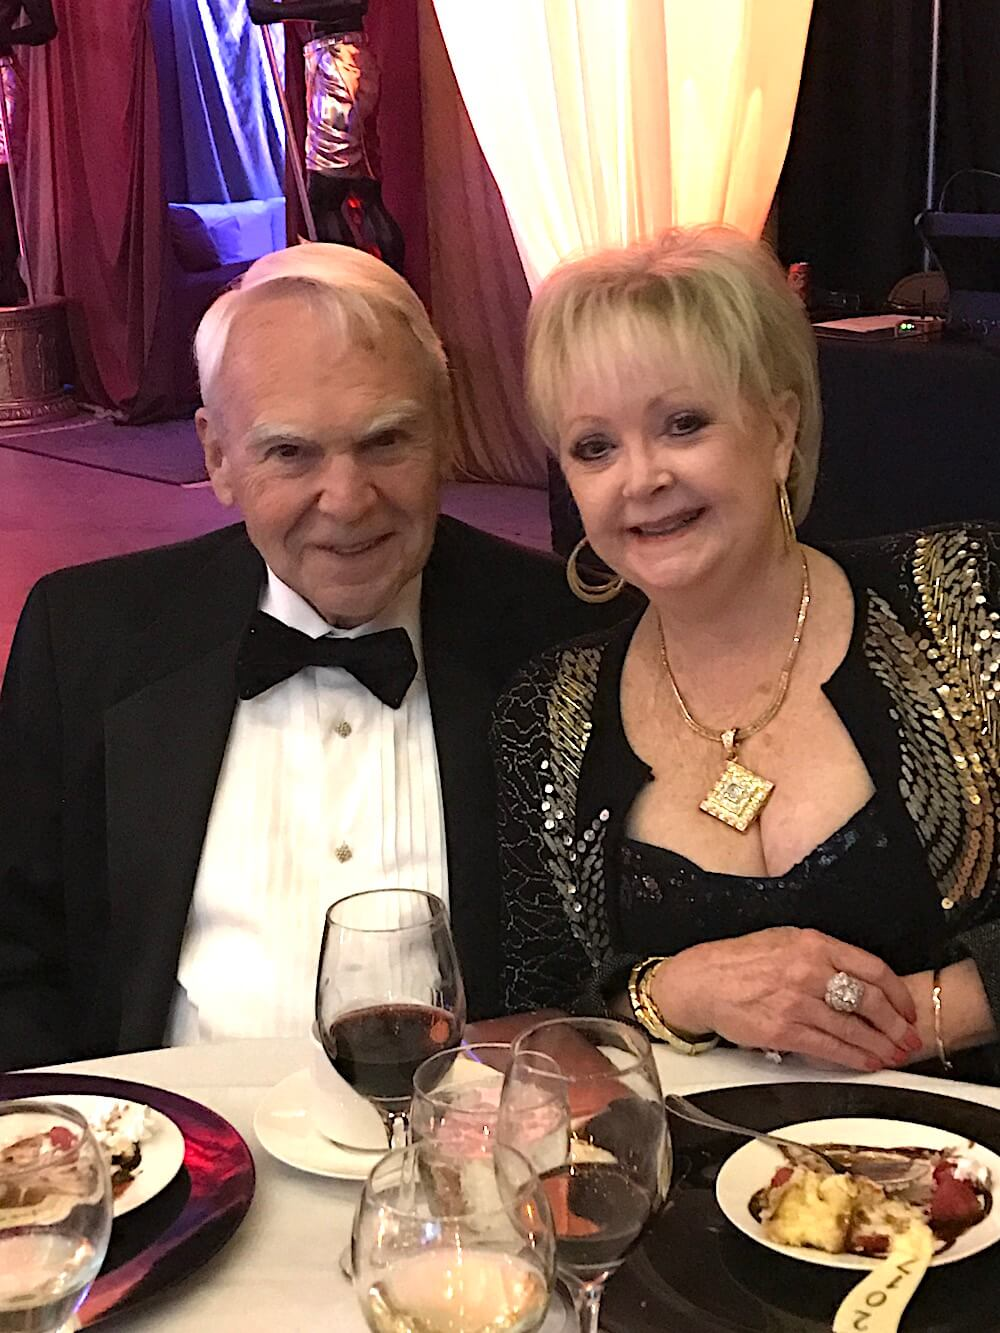 Dr. Bill and Sharon Laing.